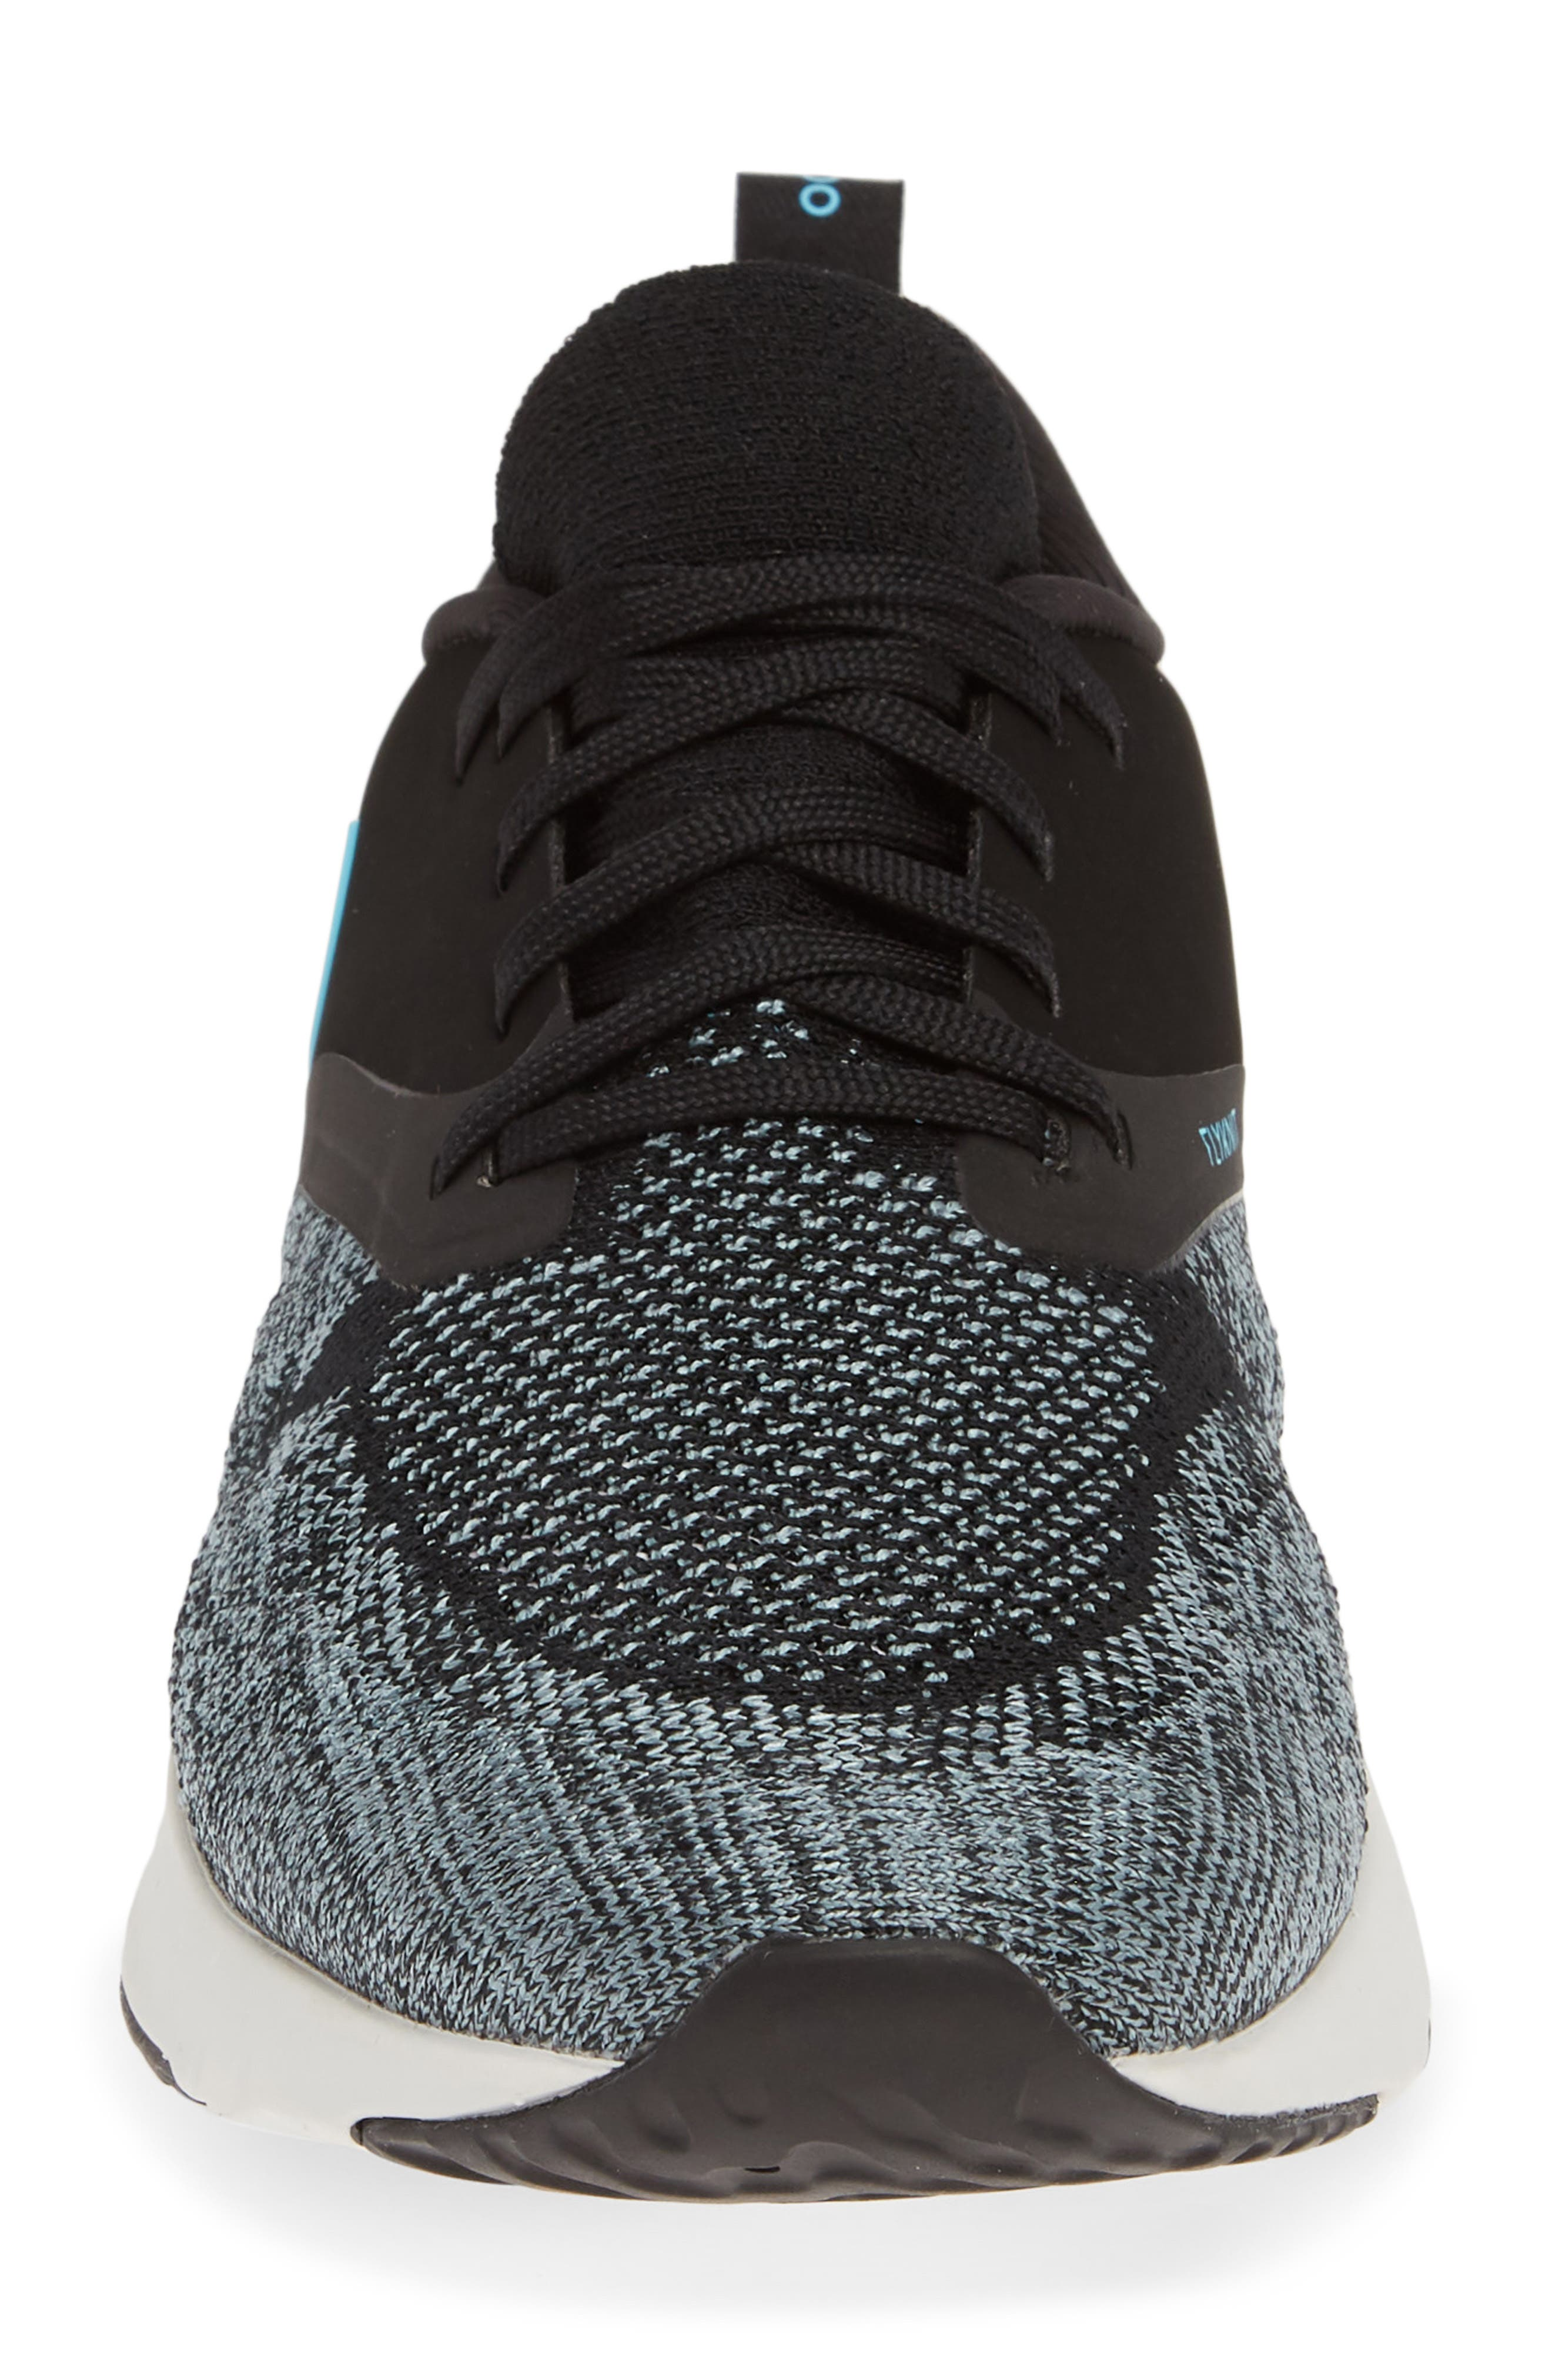 NIKE,                             Odyssey React 2 Flyknit Running Shoe,                             Alternate thumbnail 4, color,                             BLACK/ BLUE FURY/ AVIATOR GREY